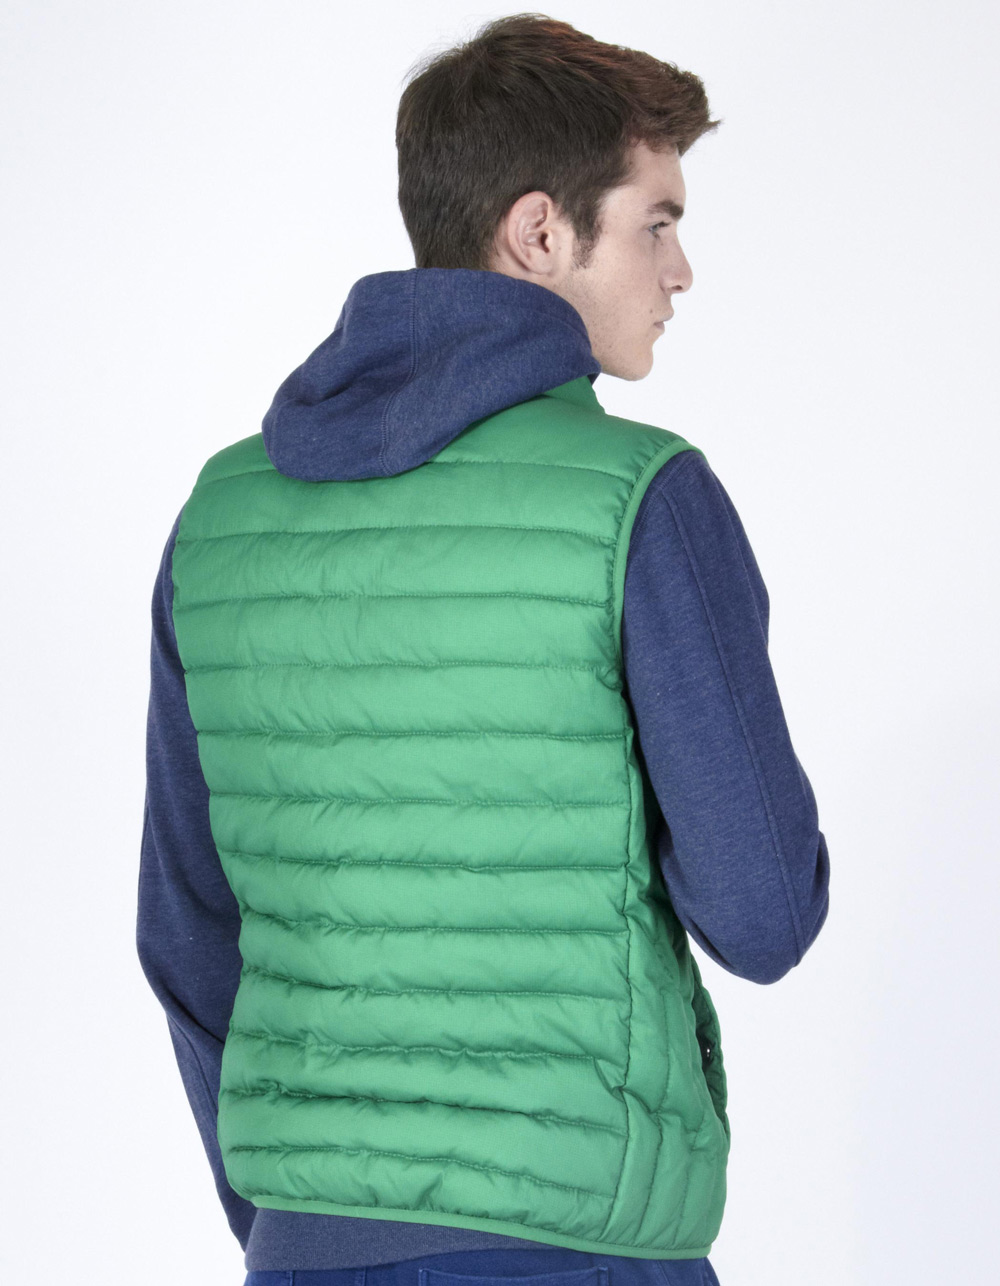 Green quilted vest - Backside